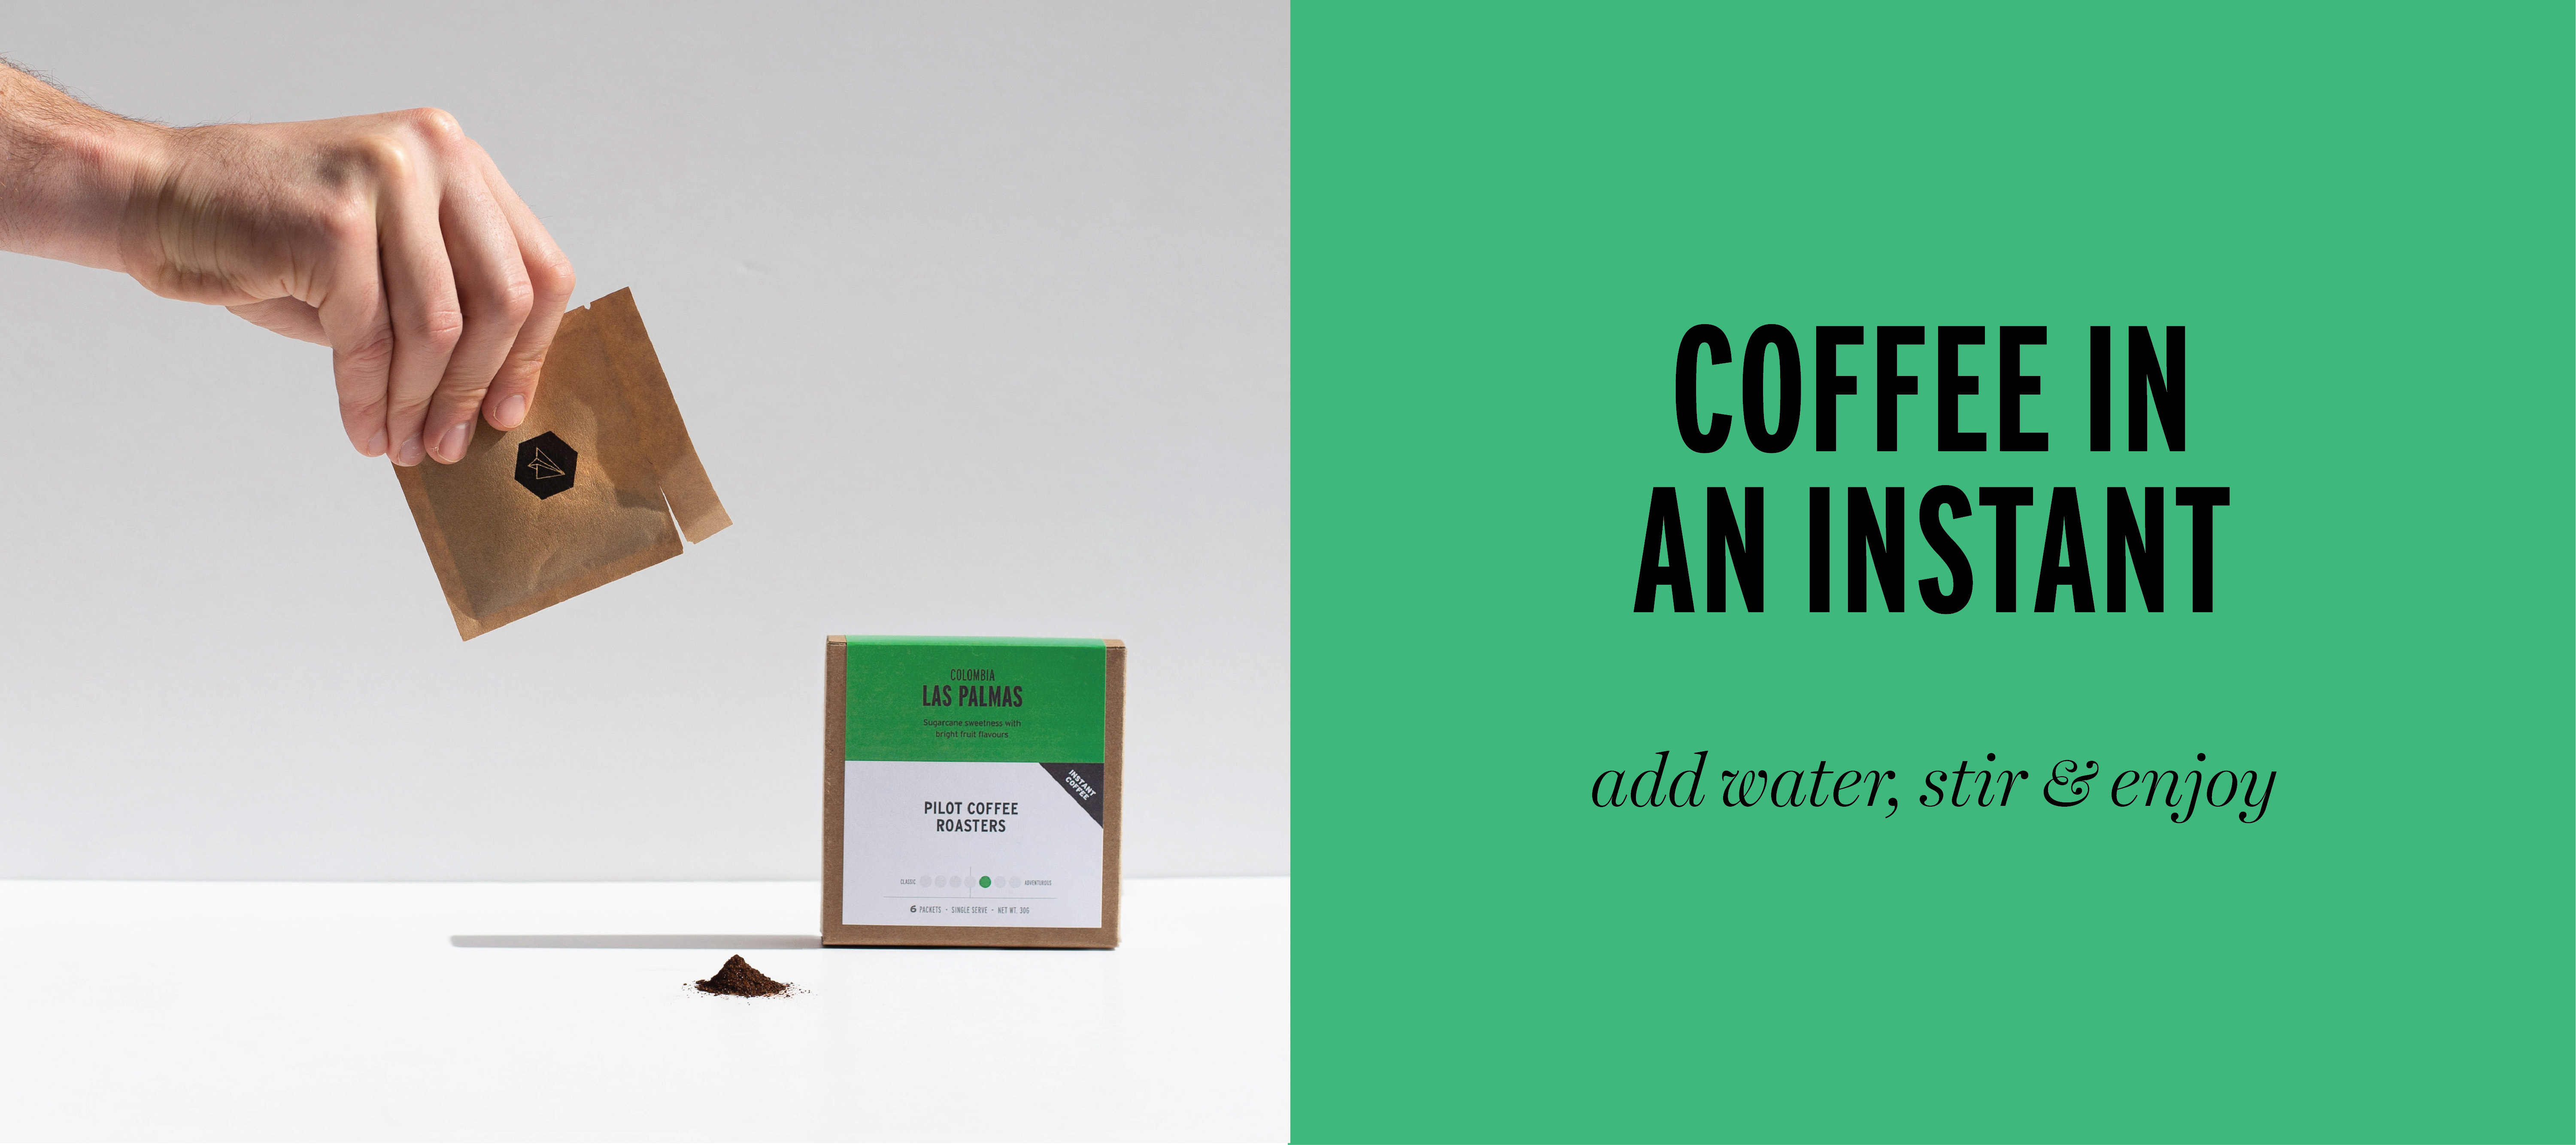 Instant coffee. Just add water, stir and enjoy. Simple and convenient.